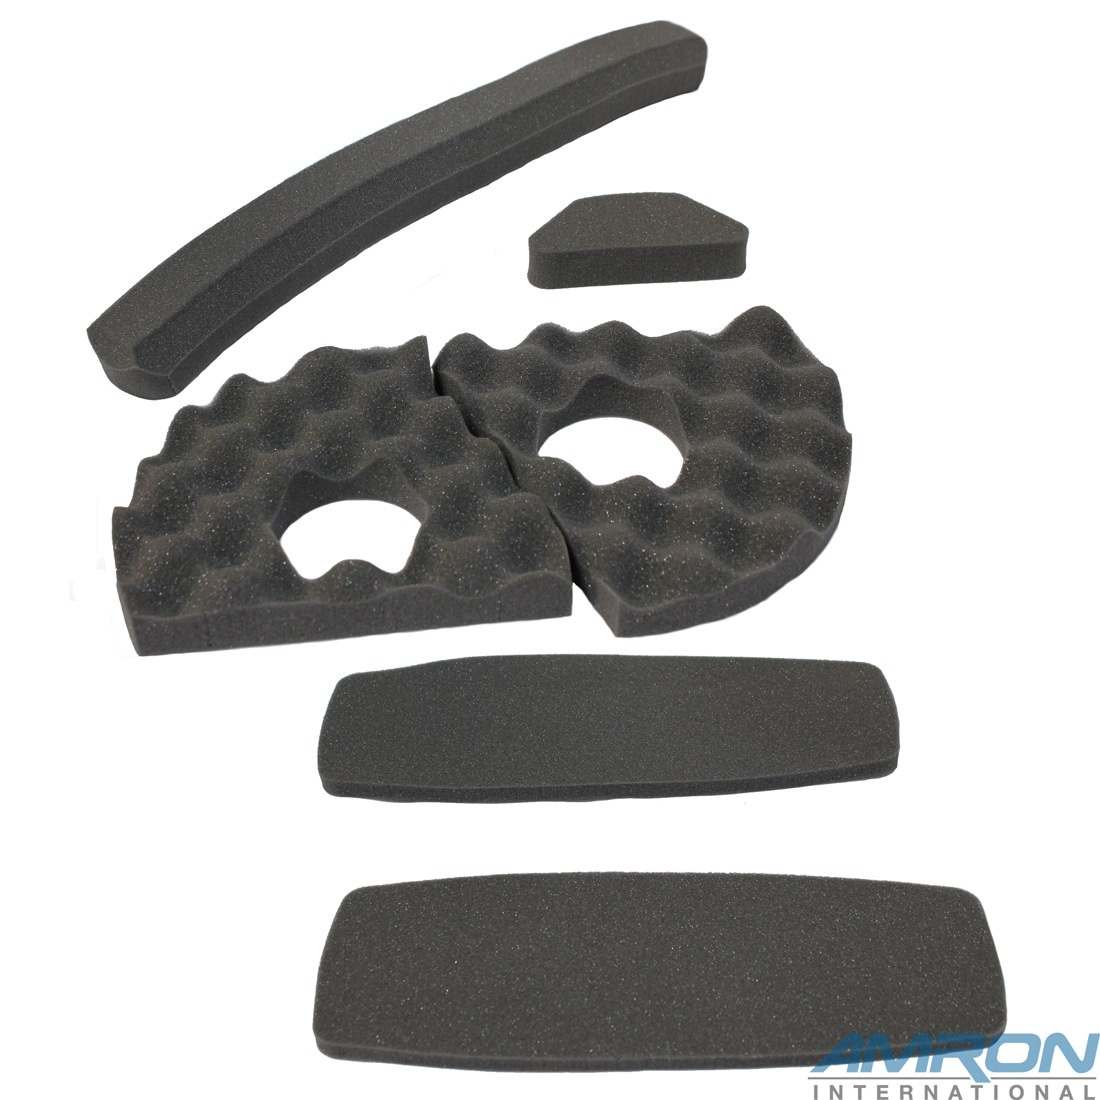 Kirby Morgan 510-672 Replacement Foam Kit